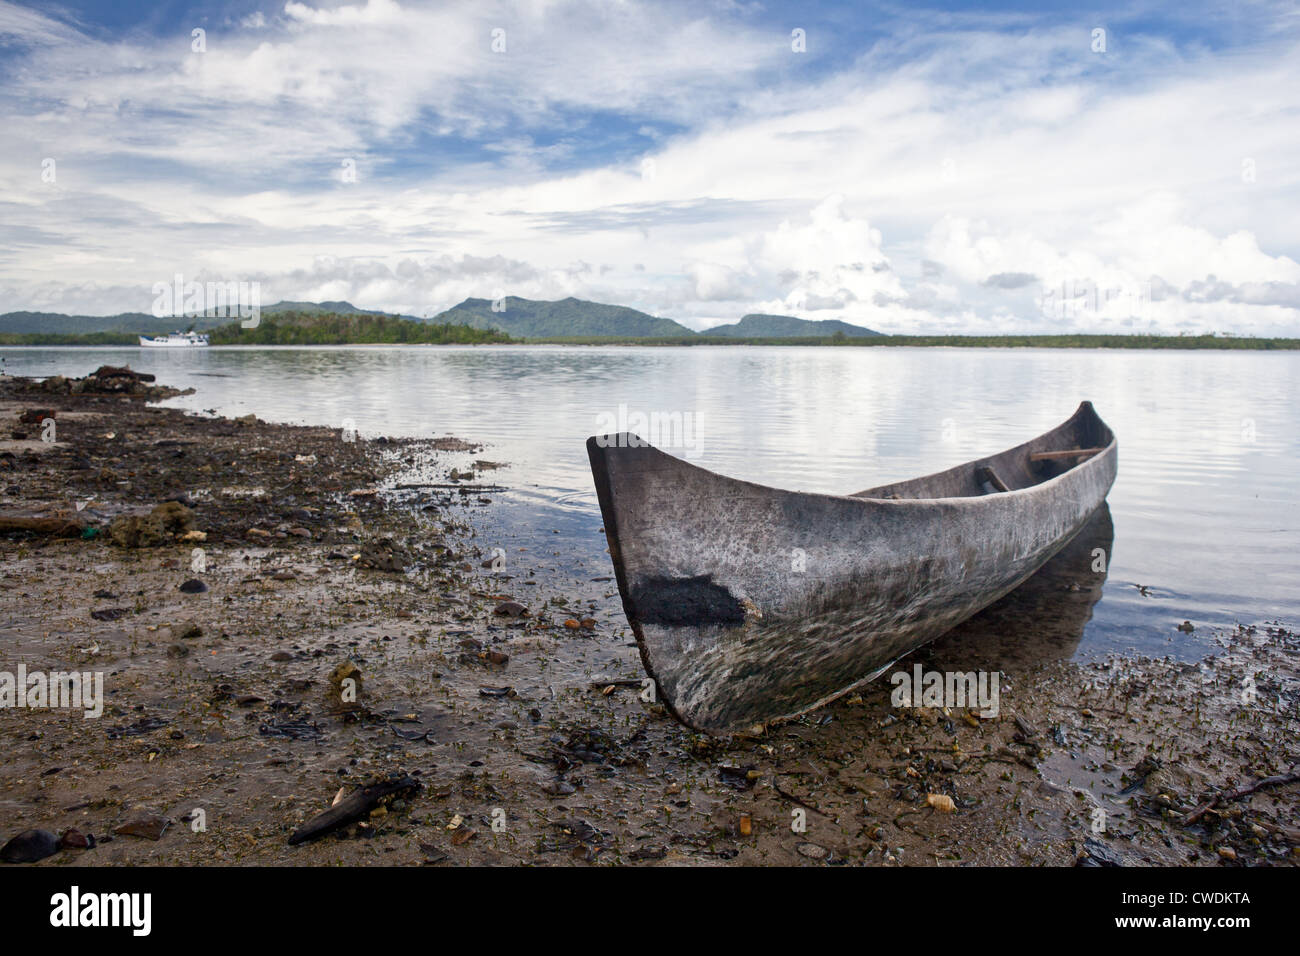 A dugout canoe is pulled up to shore near a remote village that lies in the Russell Islands, part of the Solomon - Stock Image